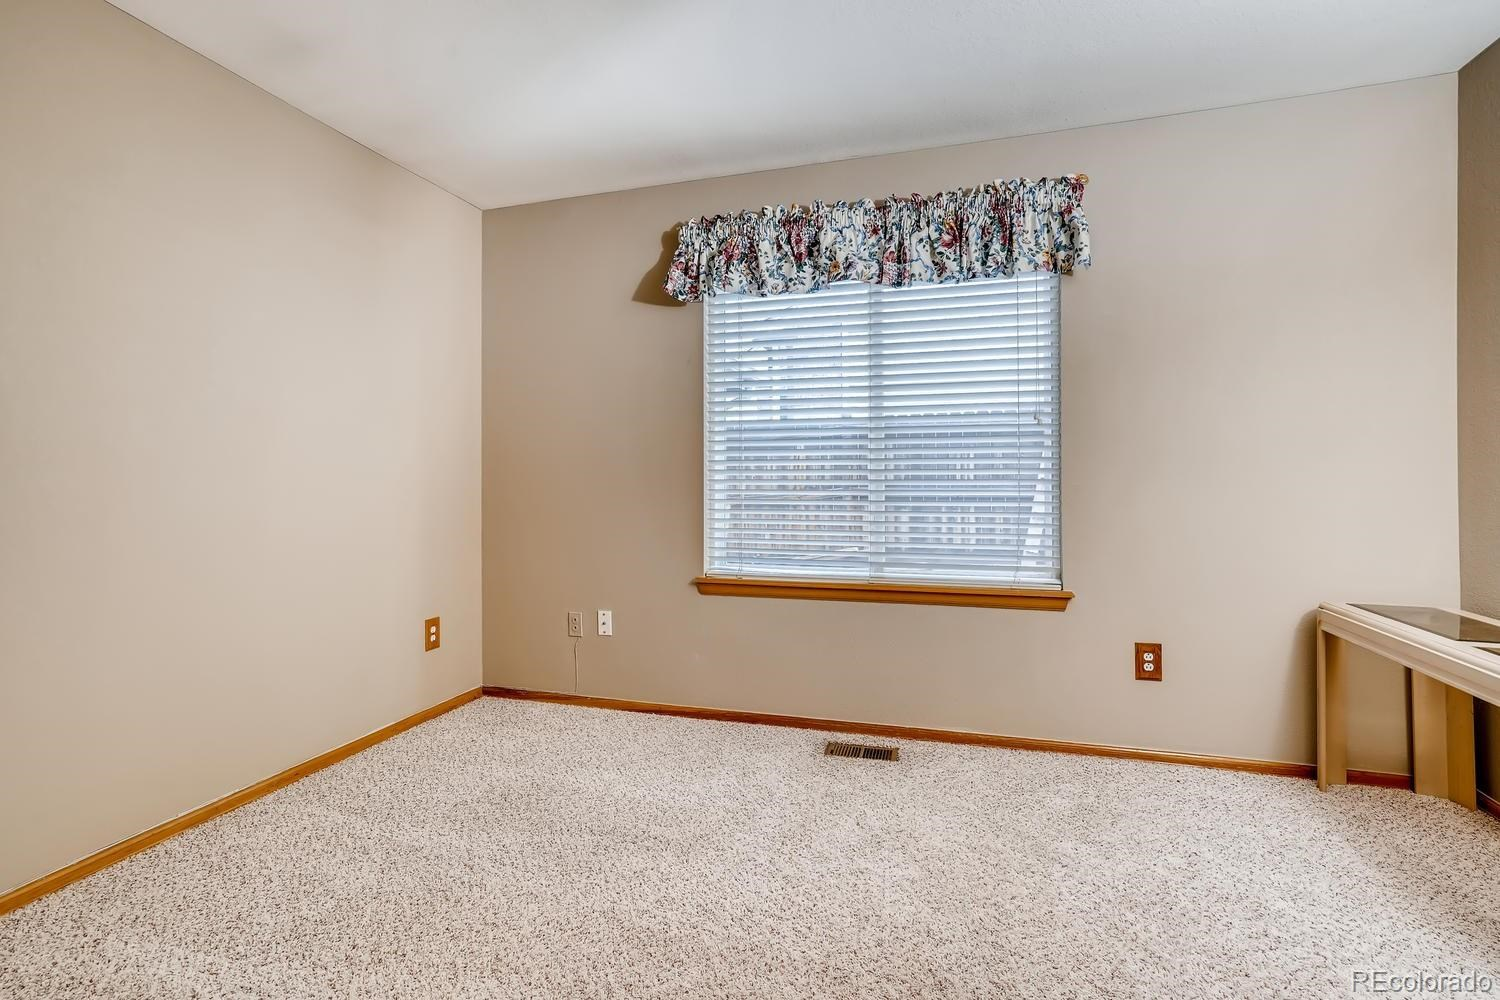 MLS# 6431155 - 7 - 6773 W 98th Circle, Westminster, CO 80021